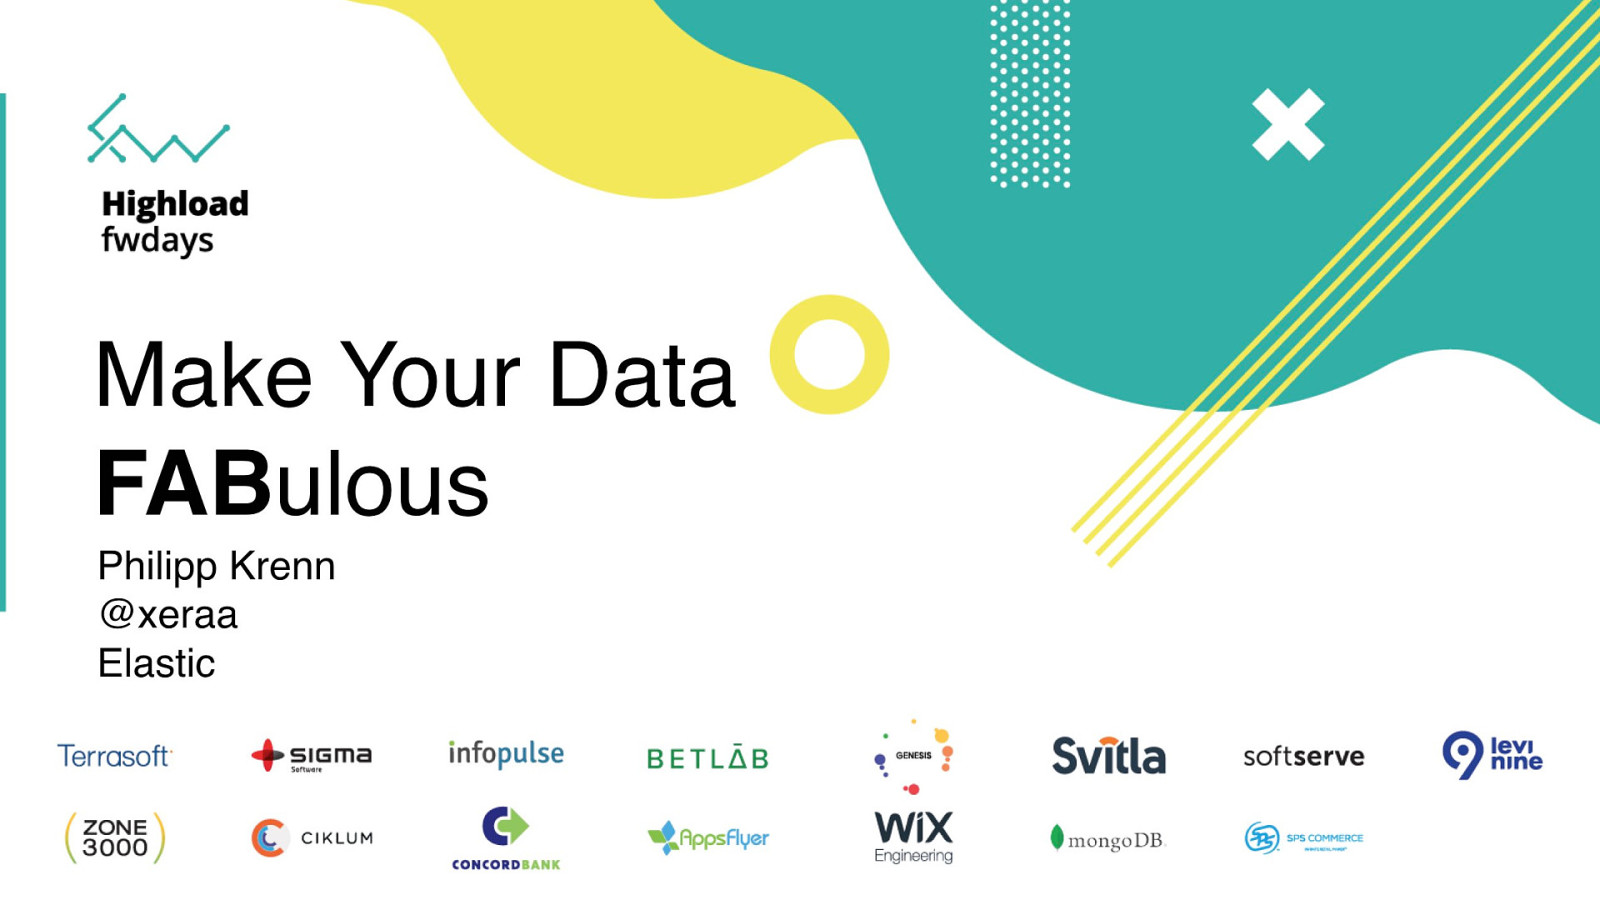 Make Your Data FABulous